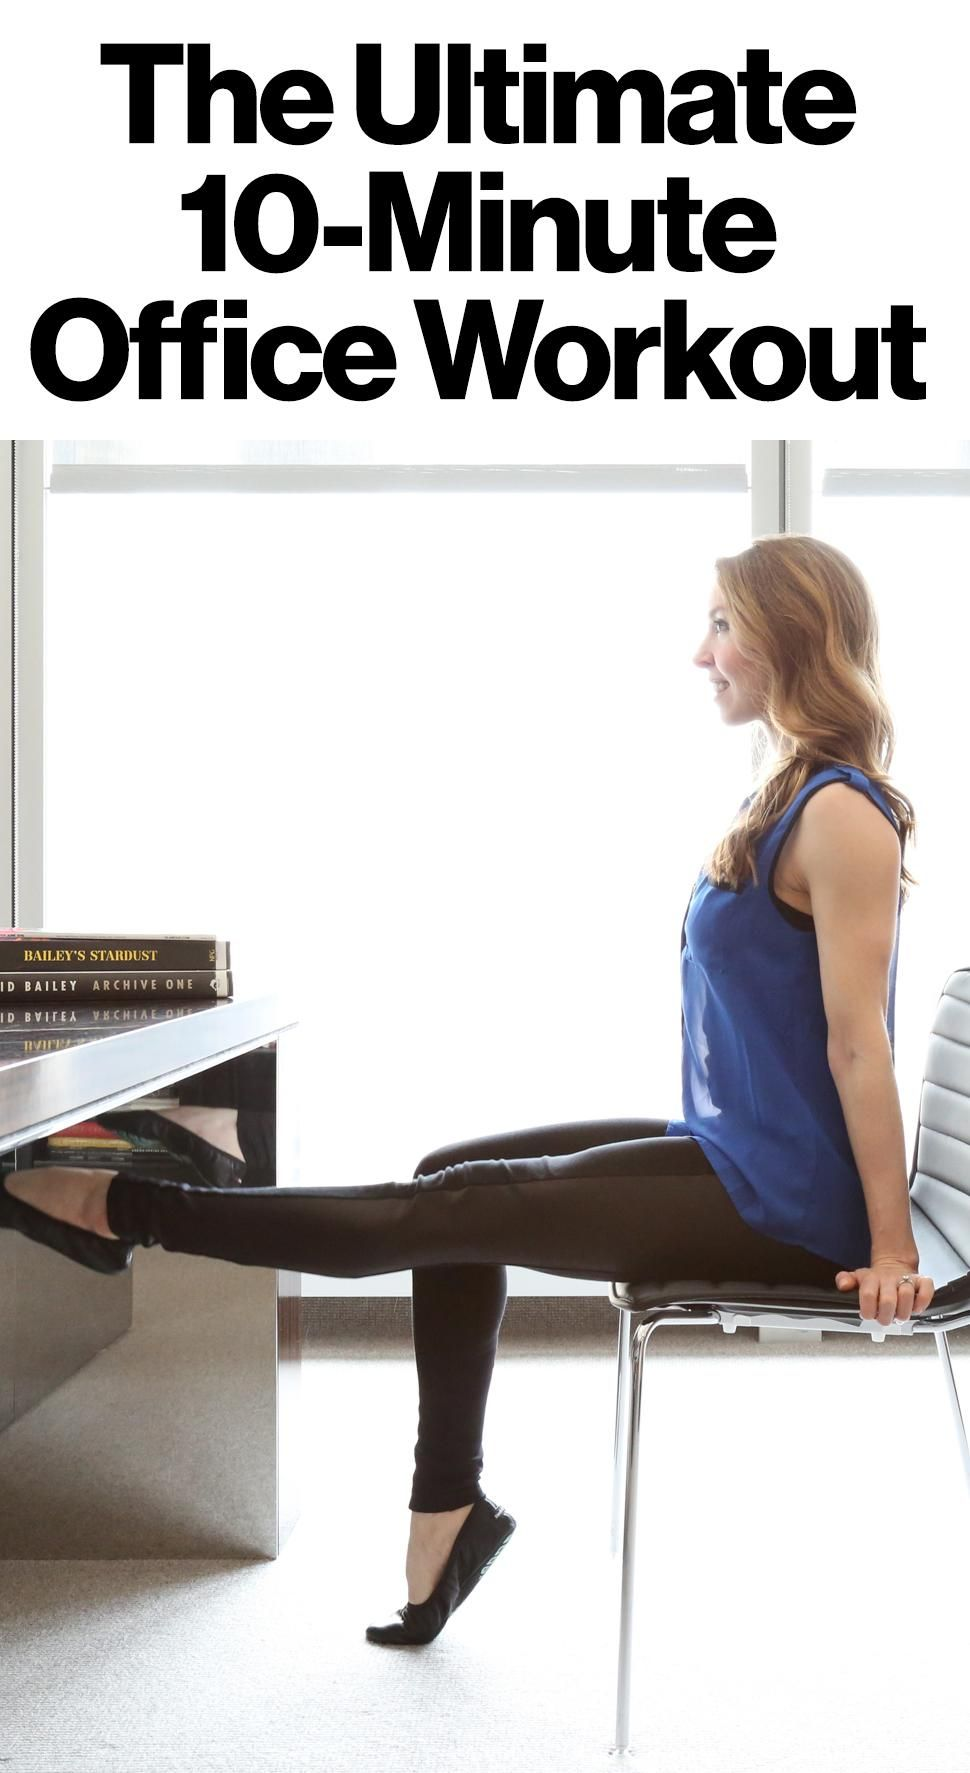 The 10-Minute Stair Workout You Can Do At Home forecasting